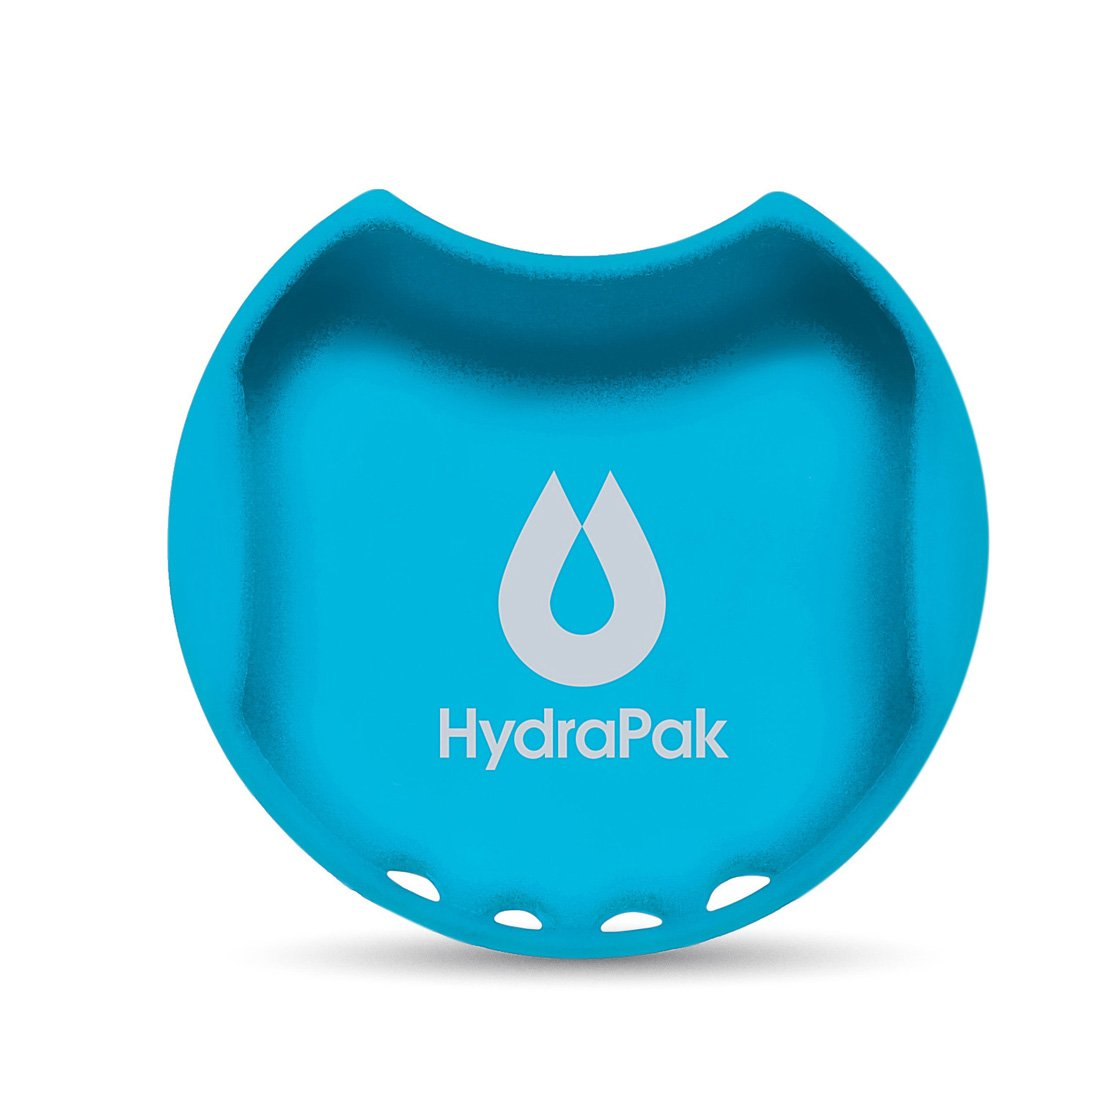 HydraPak Watergate Wide Mouth Splash Guard - BPA & PVC Free